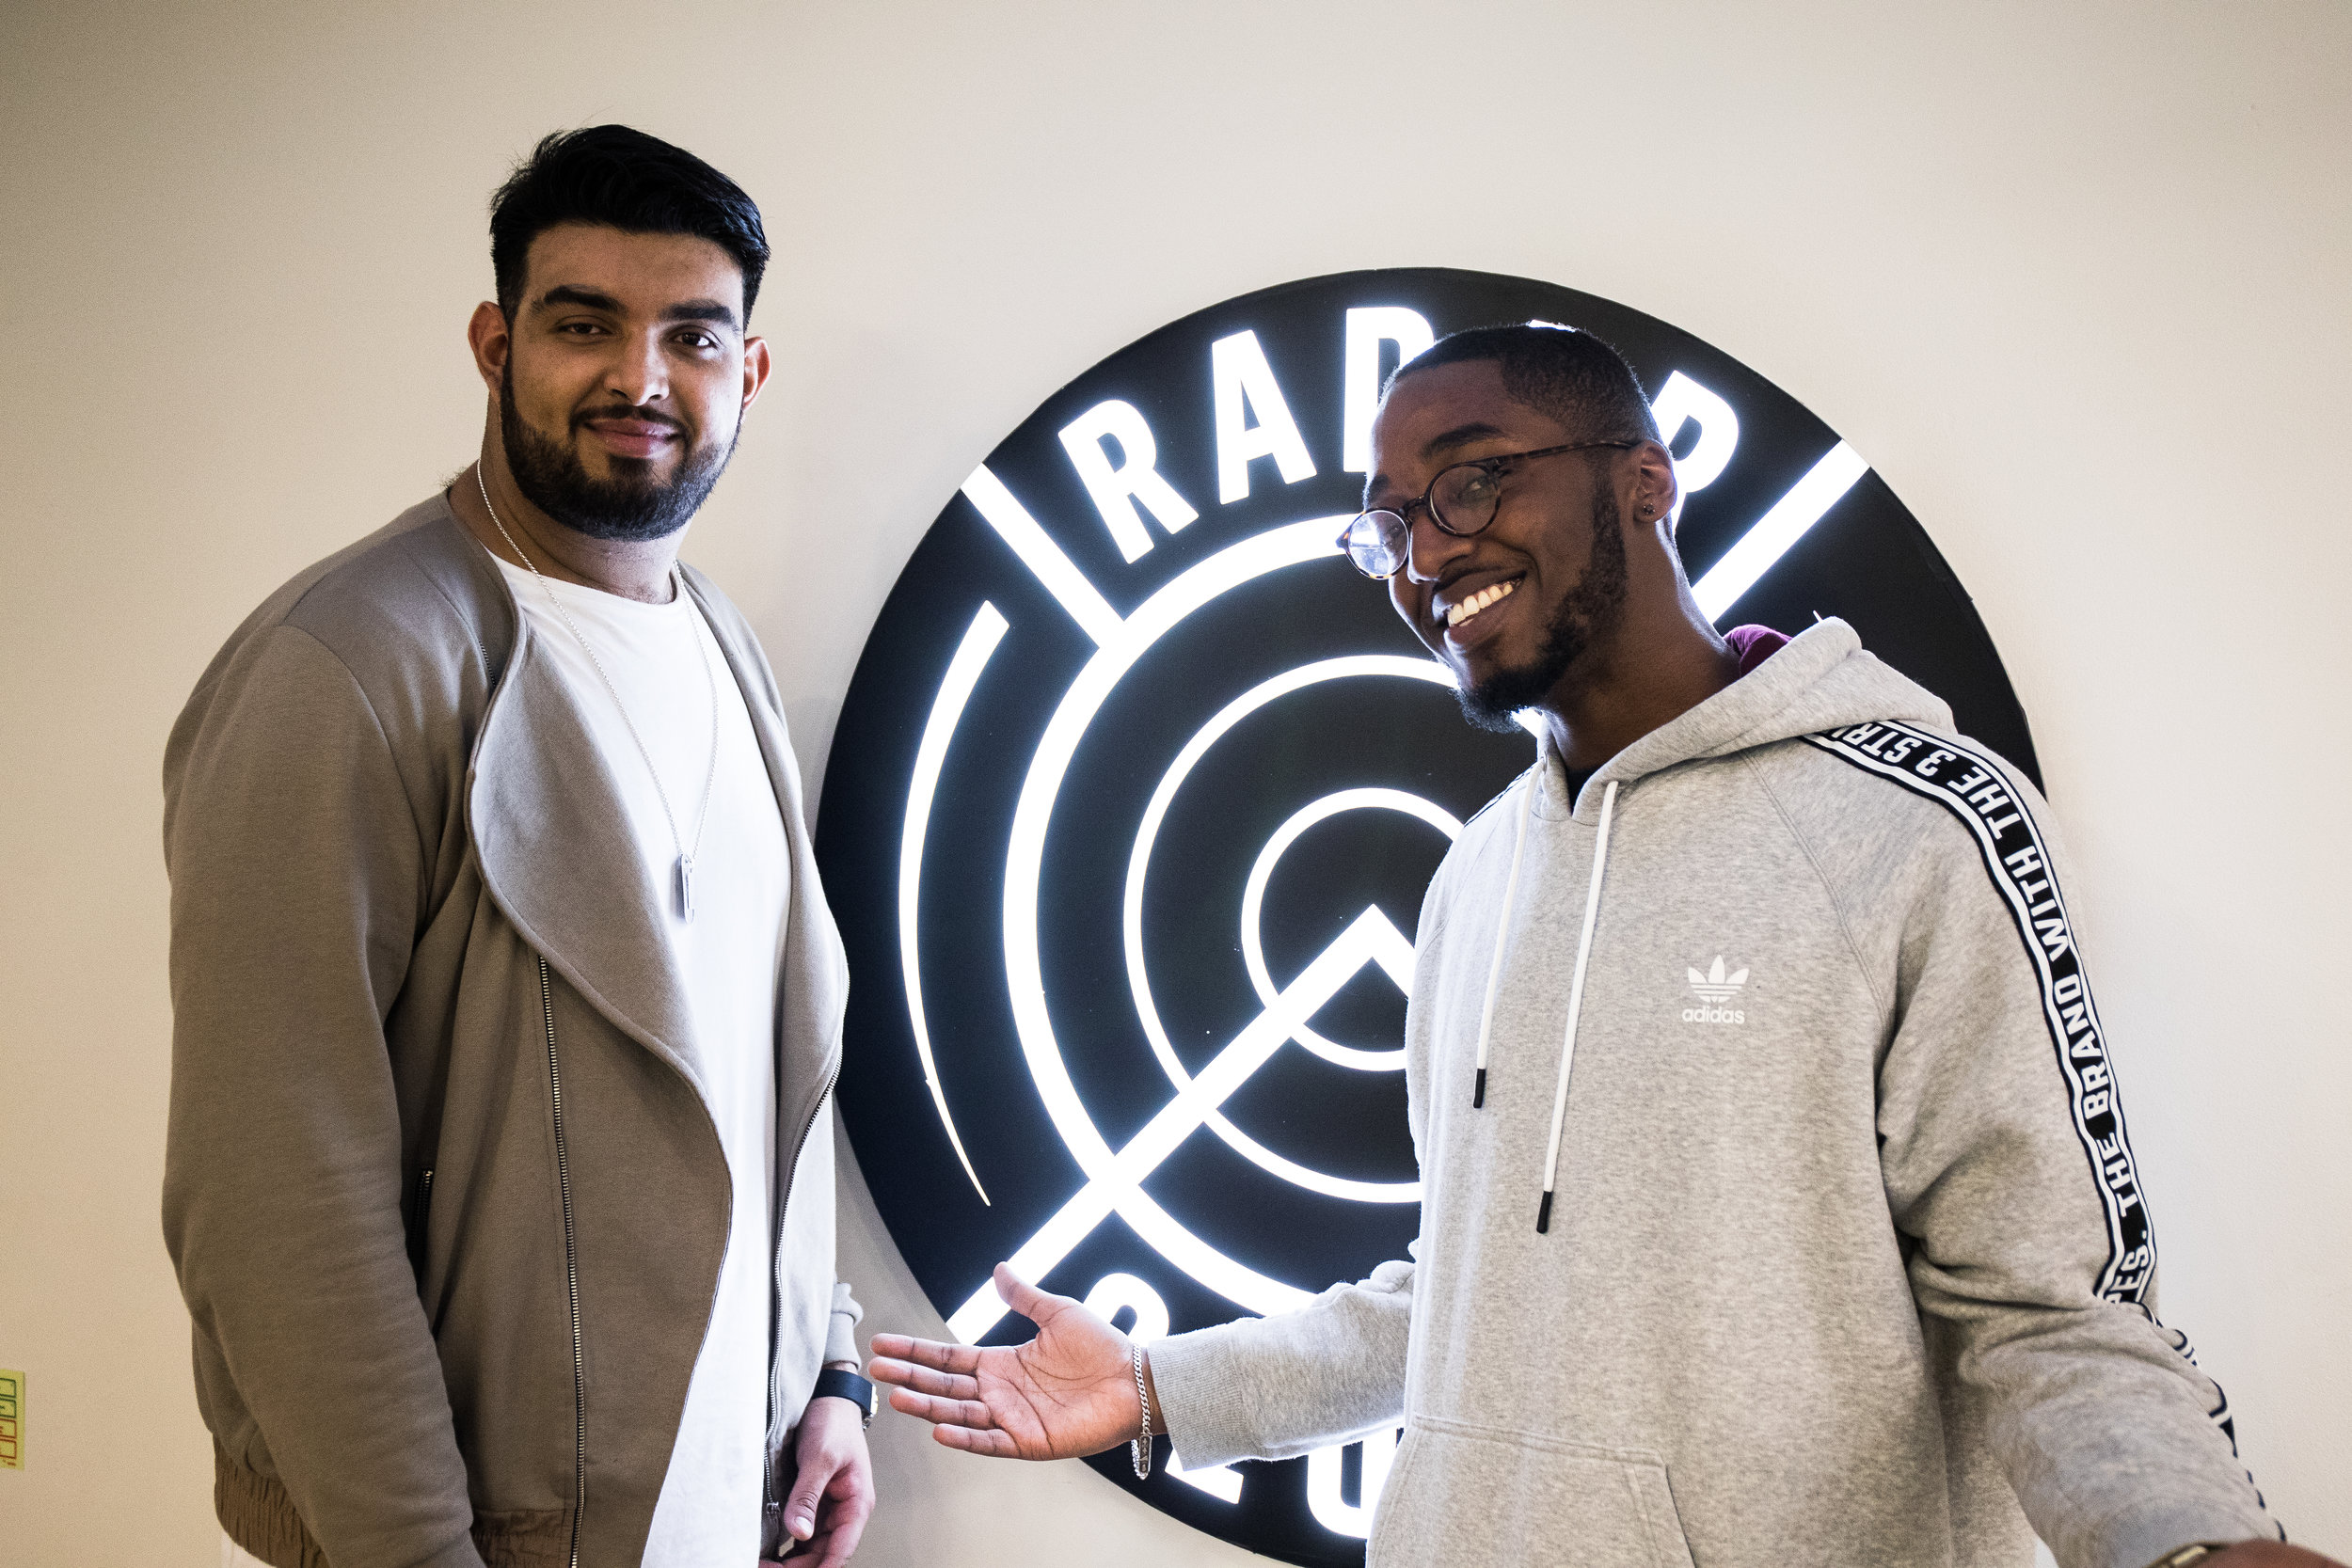 CHANNEL ALT RADIO  Back in February, CassKidd invited me onto his ChannelAlt show on Radar Radio to talk about the  All About Helping  project for the very first time.   Hear my story